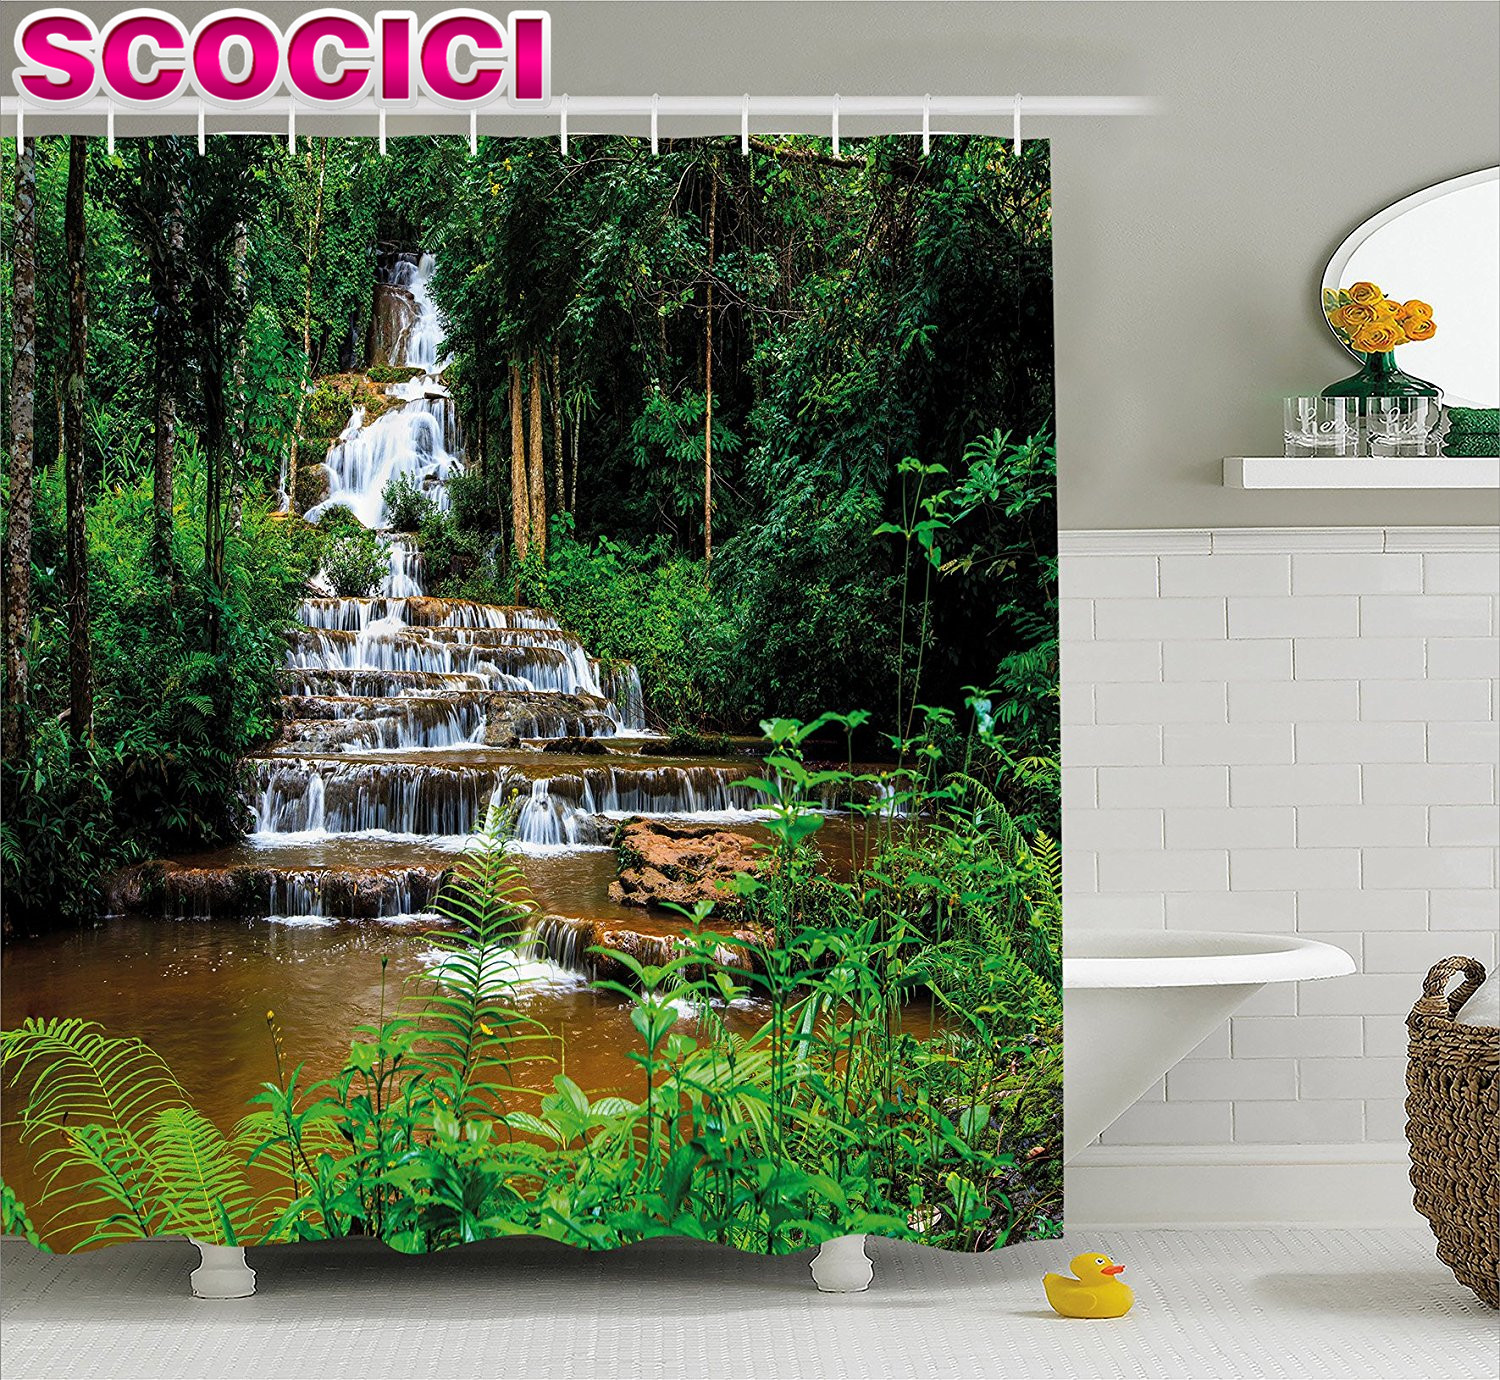 Waterfall Decor Shower Curtain Long Way Waterfall In Tropic Rainforest With  Exotic Botanic Trees And Bushes Fabric Bathroom Deco